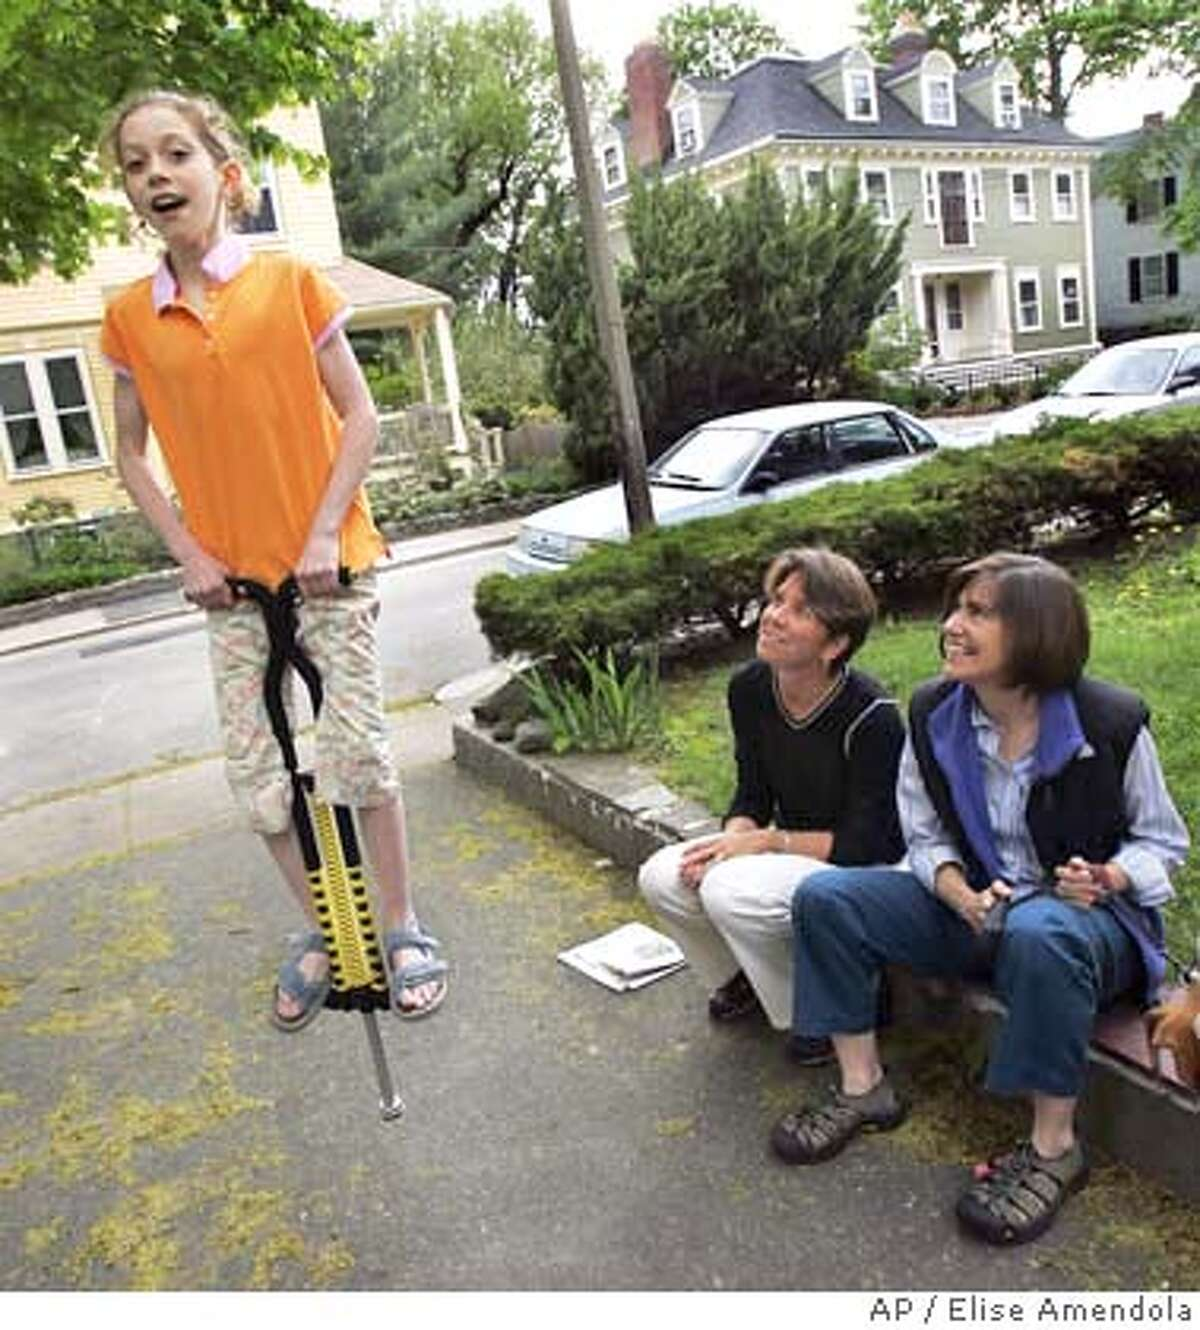 Hillary, left, and Julie Goodridge watch their nine-year-old daughter, Annie, jump on a pogo stick in their driveway in Boston's Jamaica Plain section Saturday, May 14, 2005. Julie and Hillary Goodridge, the couple whose names were immortalized as the lead plaintiffs in the lawsuit against the state, carry copies of their wedding licenses with them everywhere they go, in case they have to prove they're married in an emergency. May 17 is the one-year anniversary of gay marriage in Massachusetts. (AP Photo/Elise Amendola)